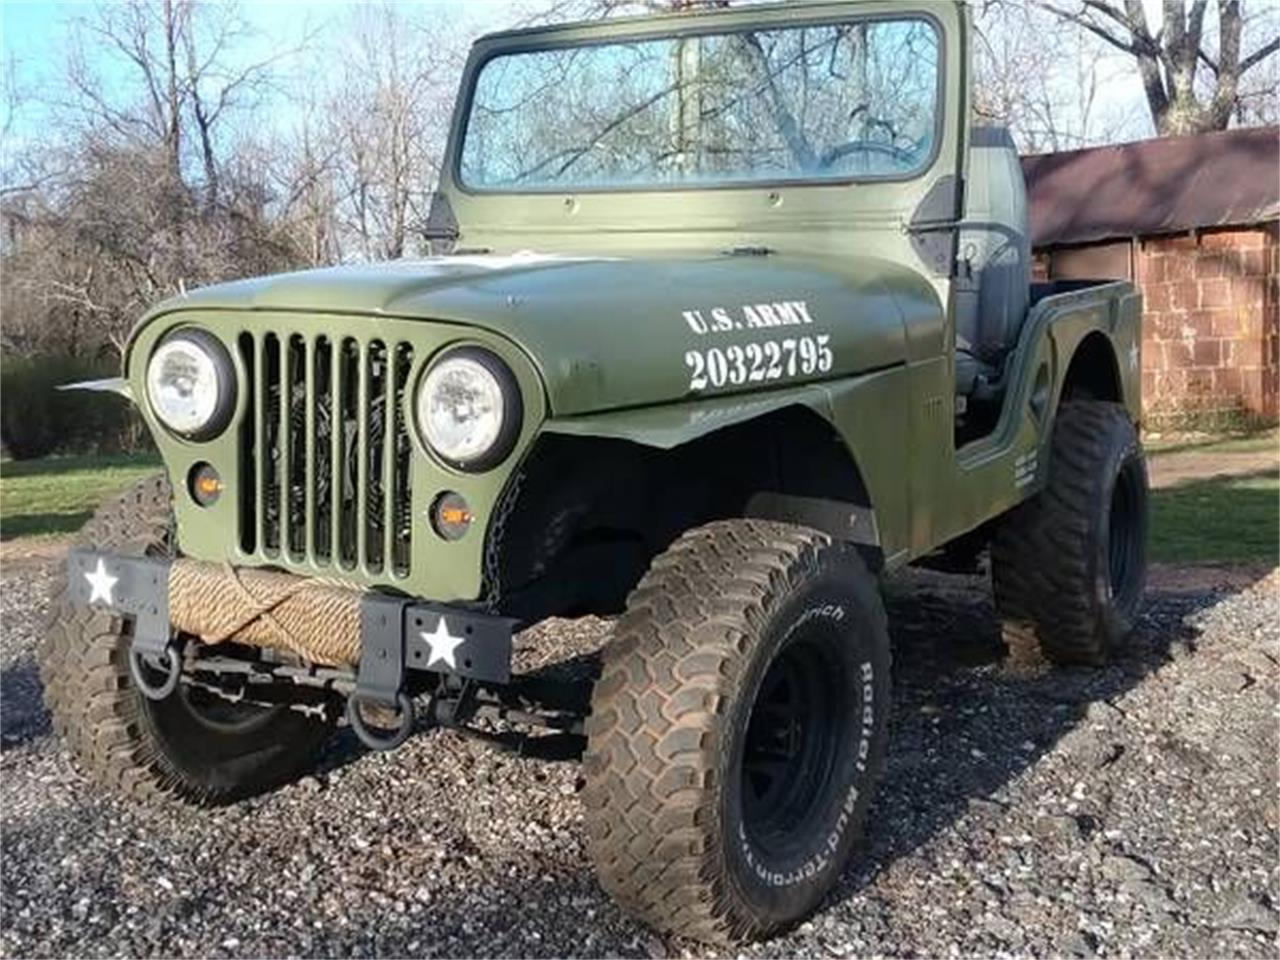 Willys Jeep For Sale >> 1960 Willys Jeep For Sale Classiccars Com Cc 1146608